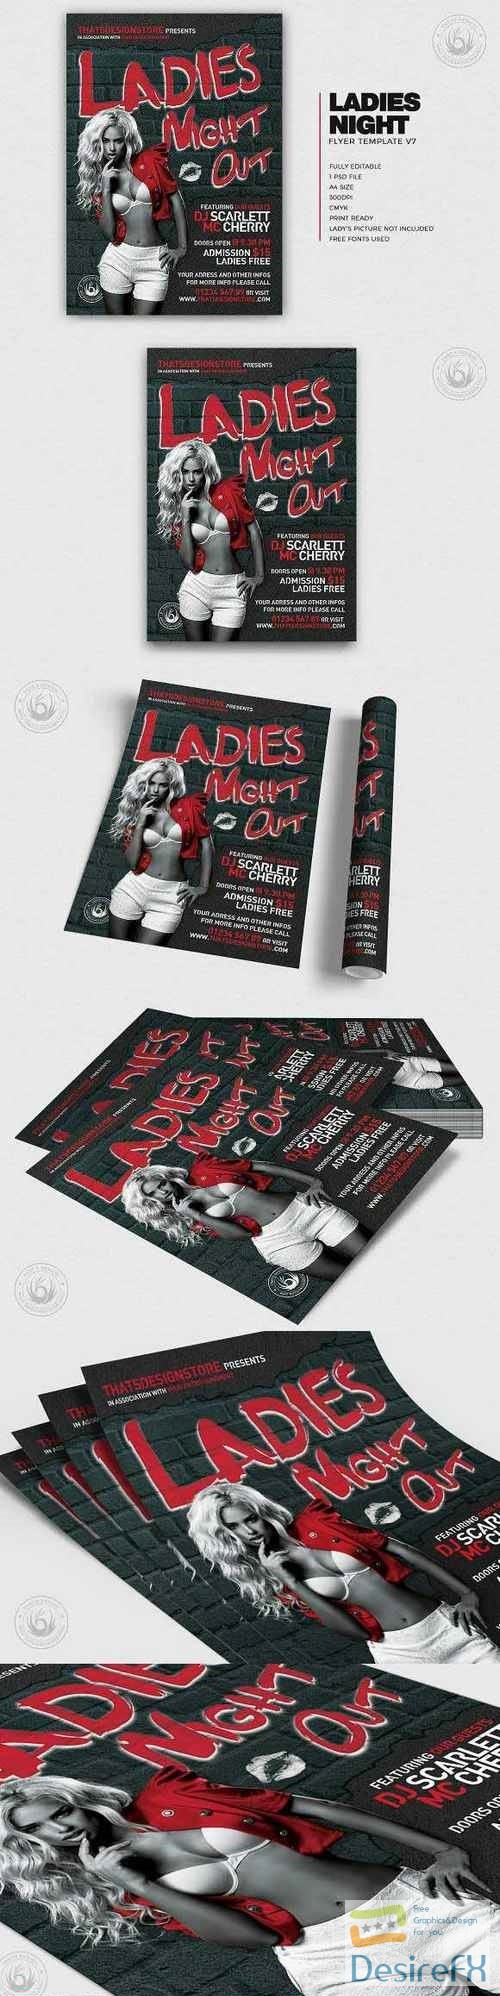 layered-psd - Ladies Night Flyer Template V7 342365